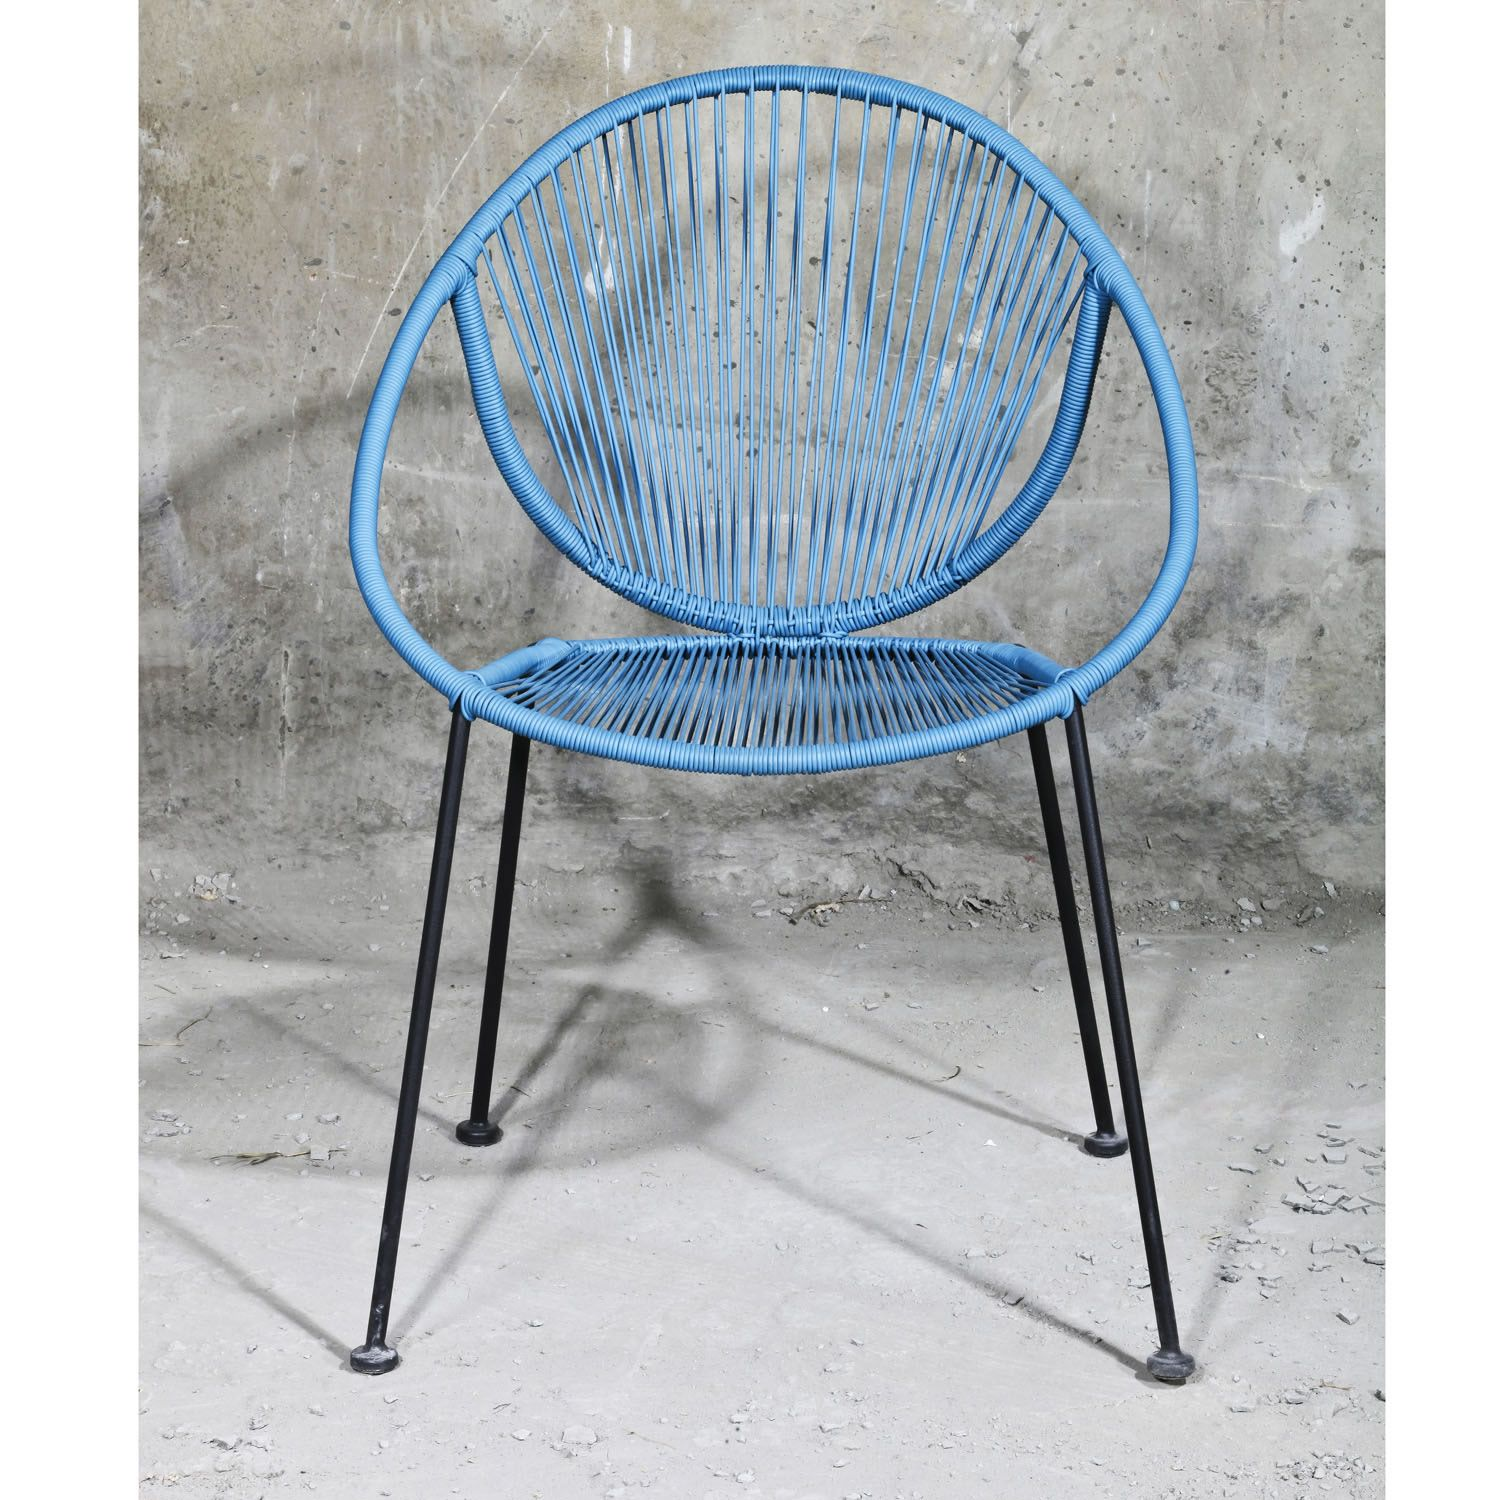 Outfit Garden Metal And PVC String Chair In Blue U2013 The UKu0027s No. 1 Garden